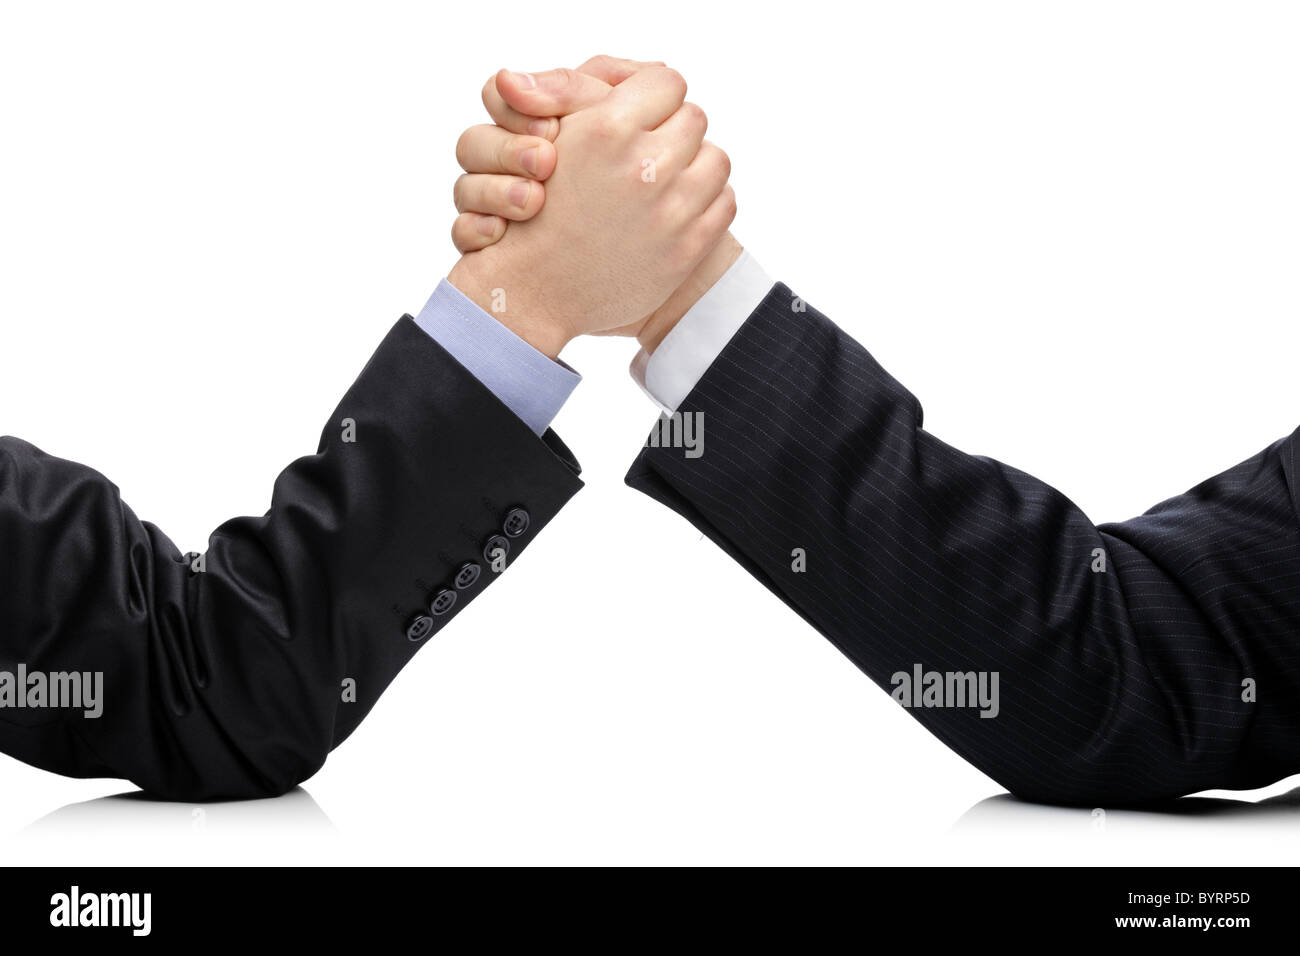 Business rival competition concept with two businessmen - Stock Image